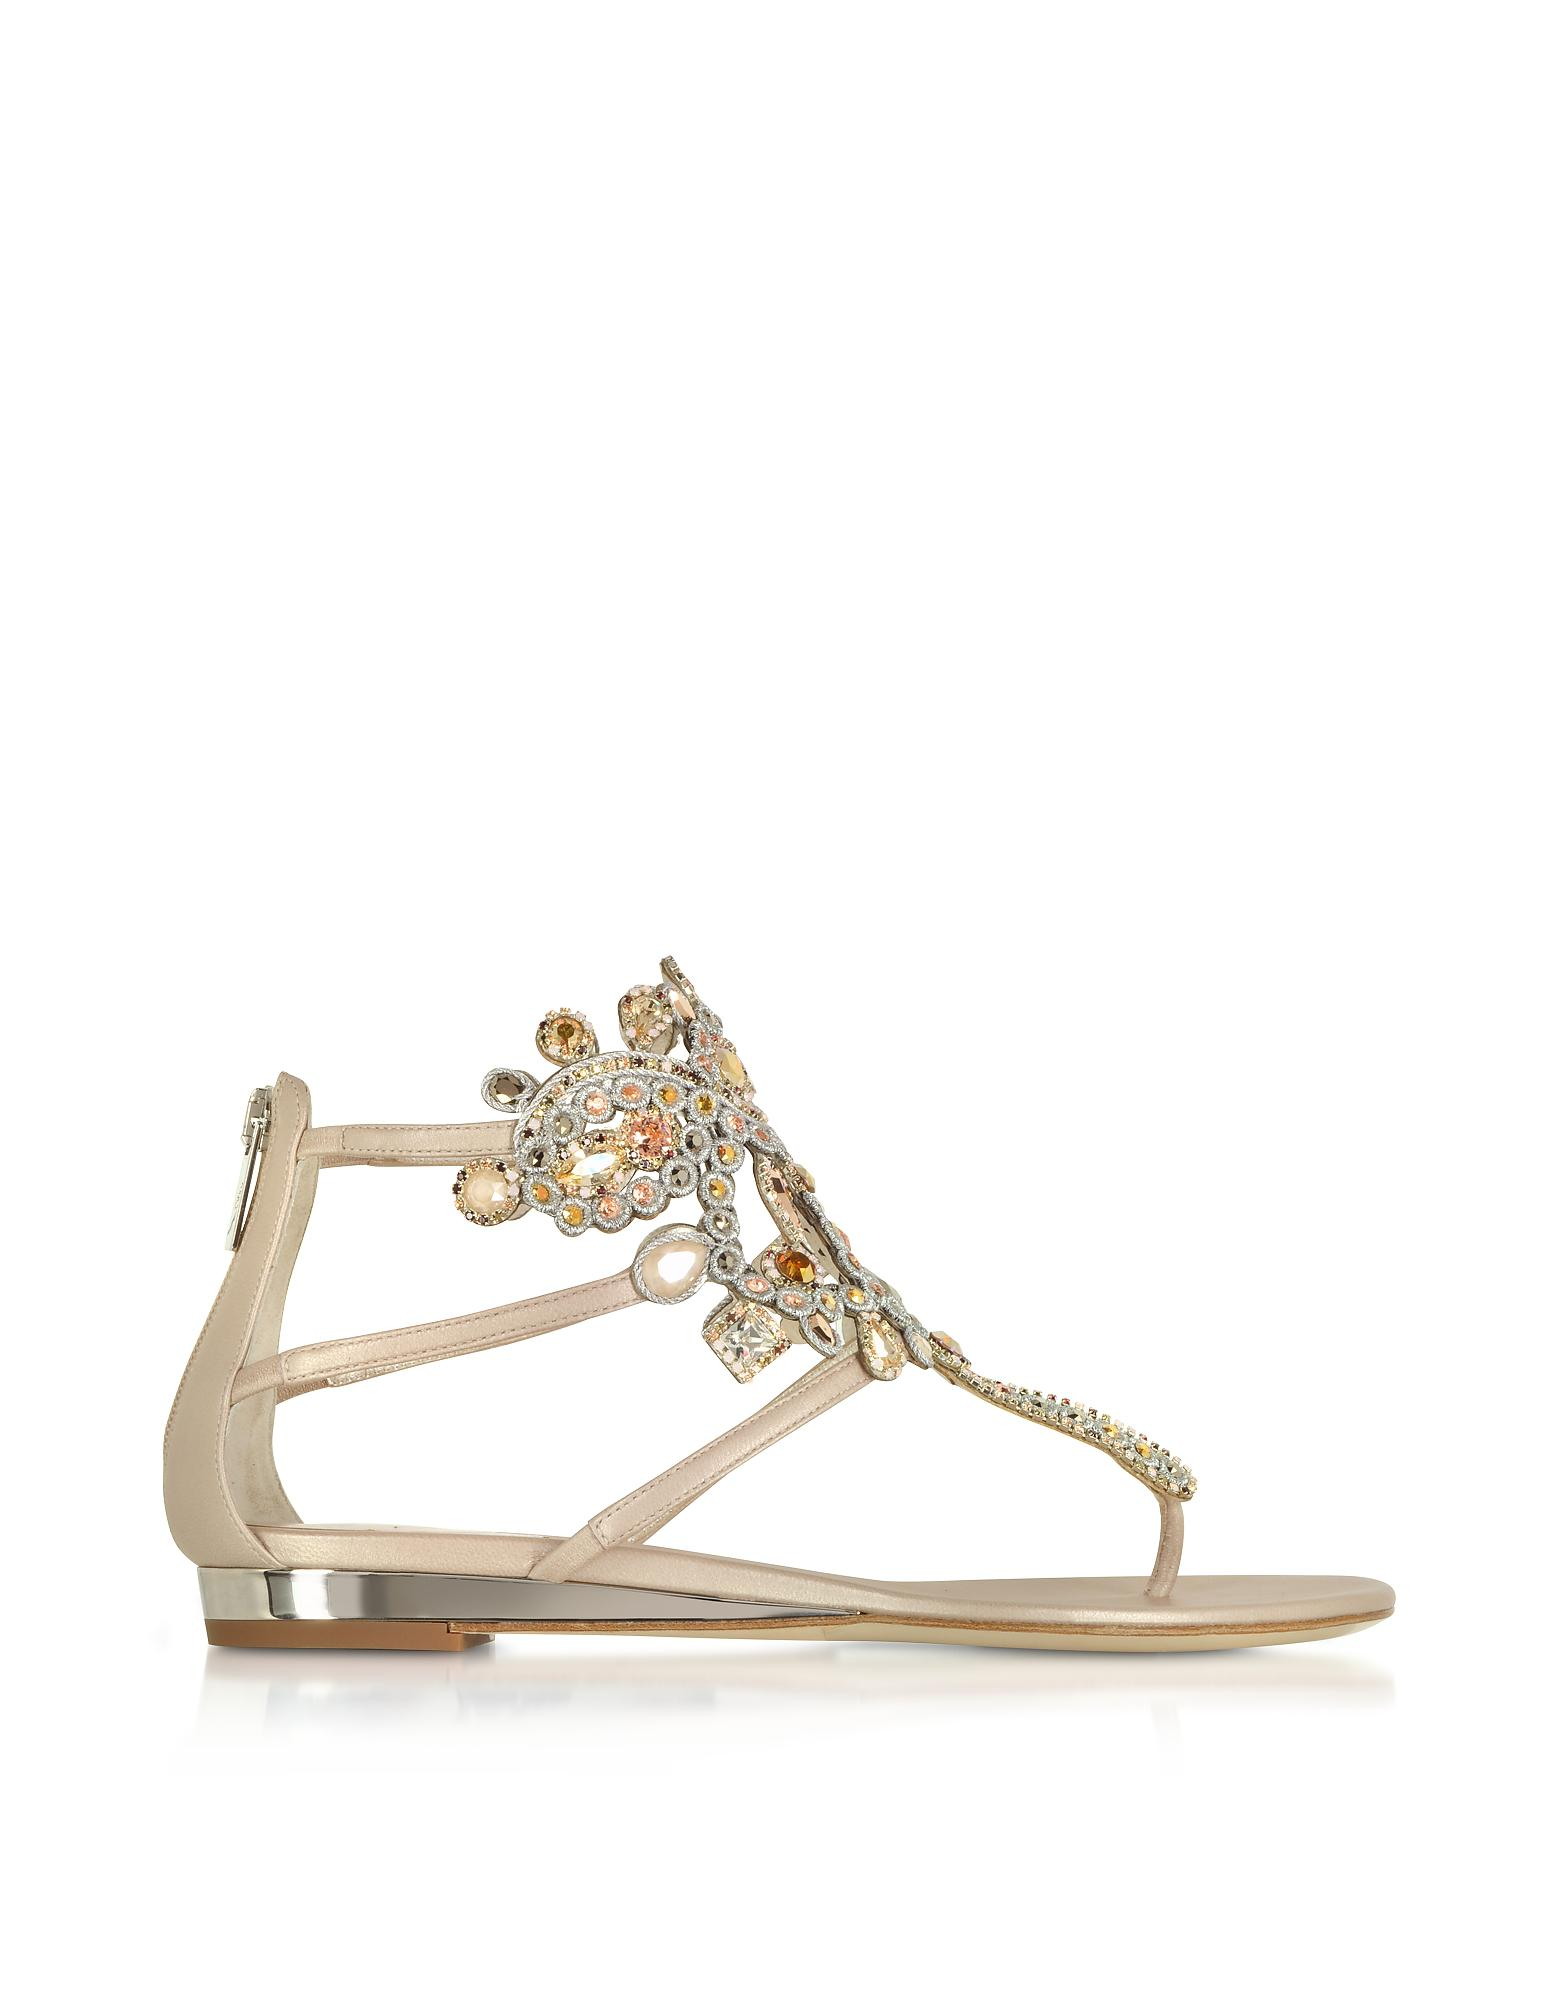 b1e180869f8963 Rene Caovilla Light Gold ivory Cream Leather Flat Sandals W crystals ...